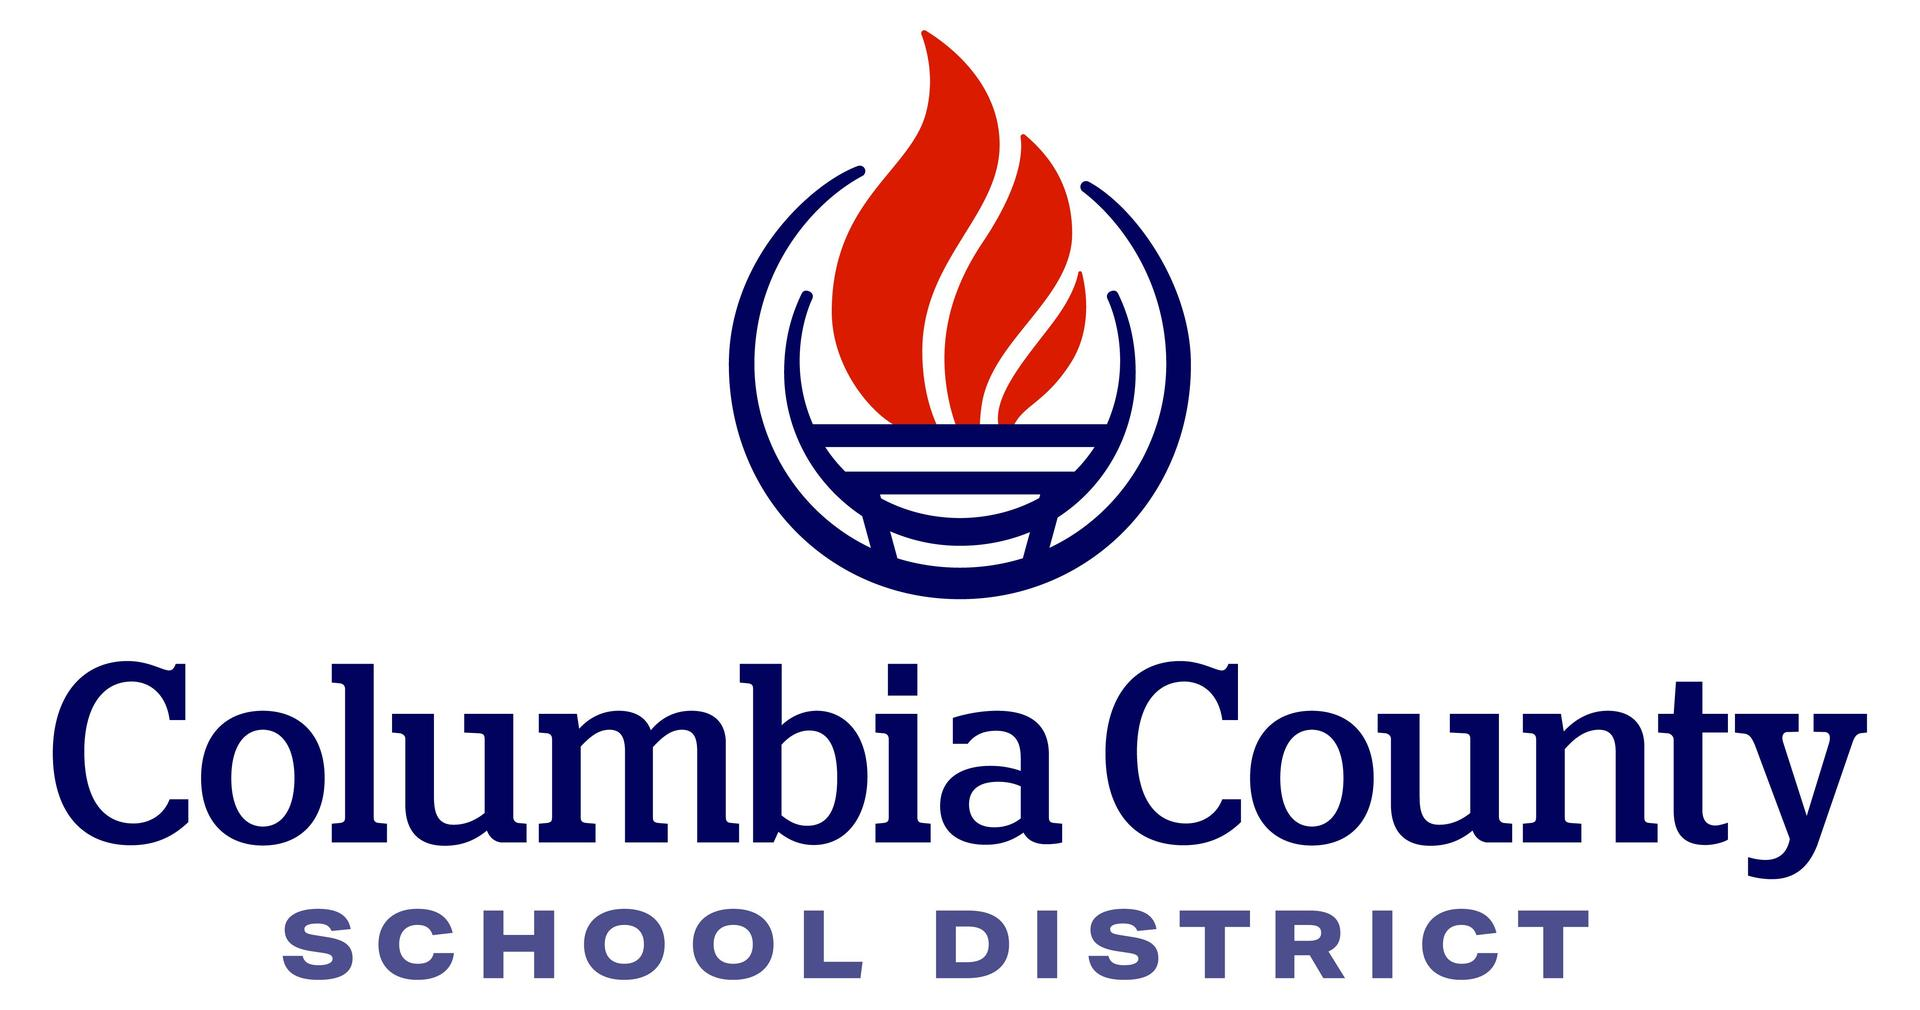 Columbia County School District